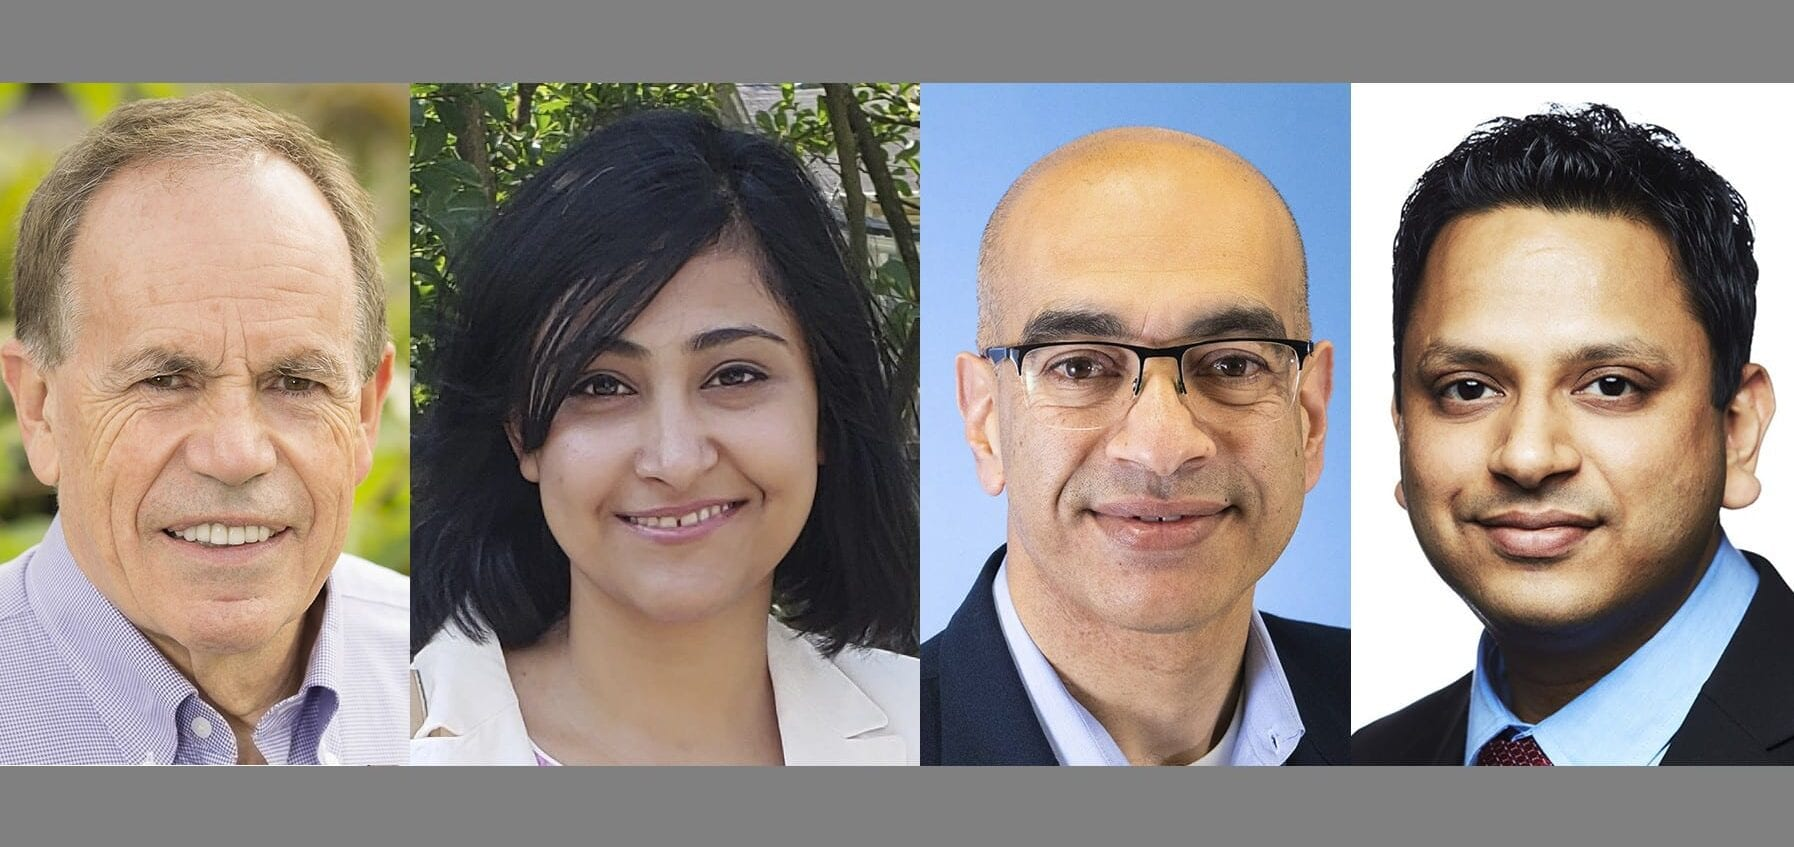 University of Illinois researchers (L to R) Steve Long, Shraddha Maitra, Vijay Singh, and Deepak Kumar conducted a series of studies on biofuel production from energycane.